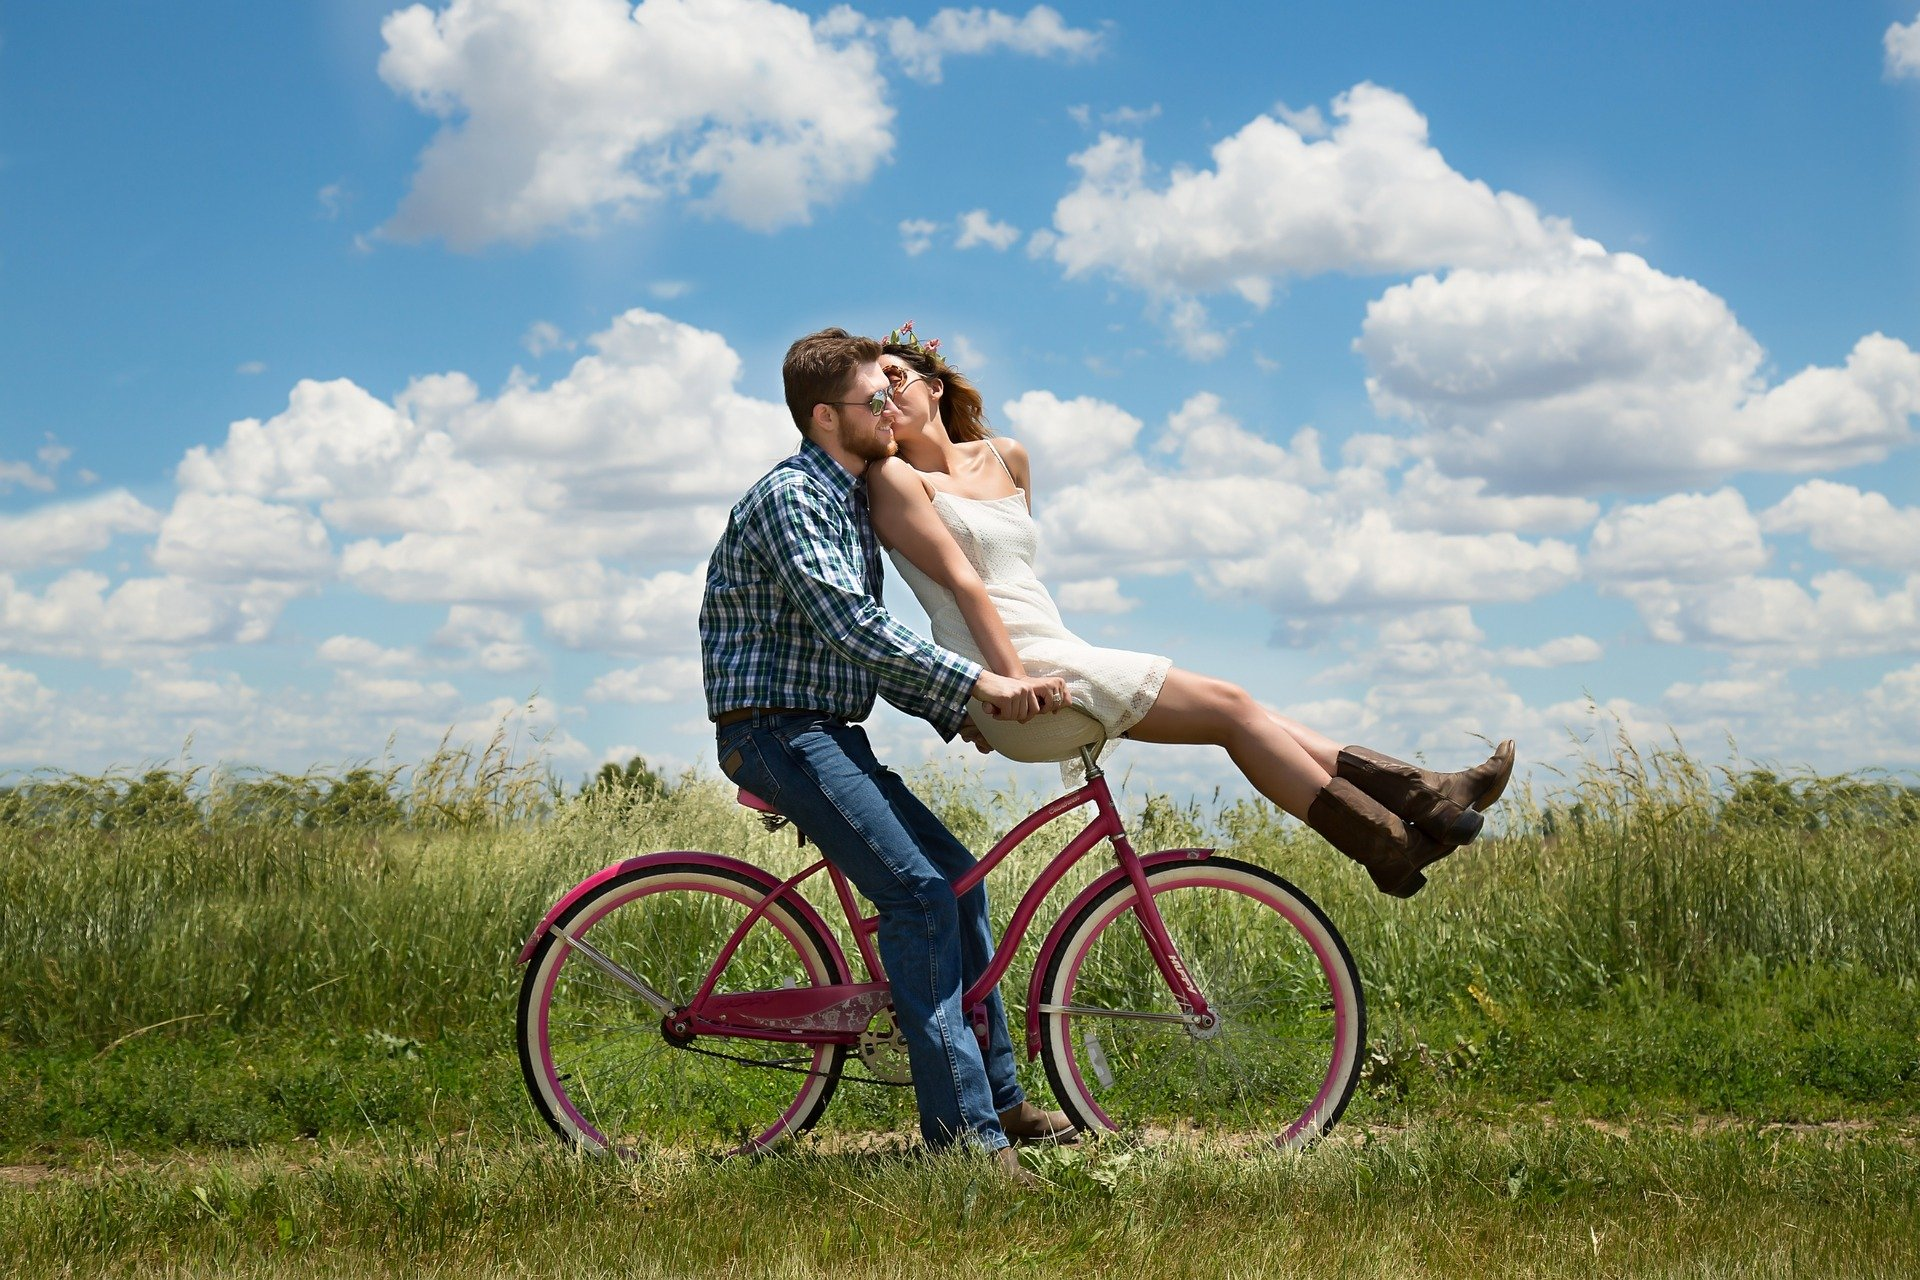 Young couple on a bicycle. | Source: Pixabay